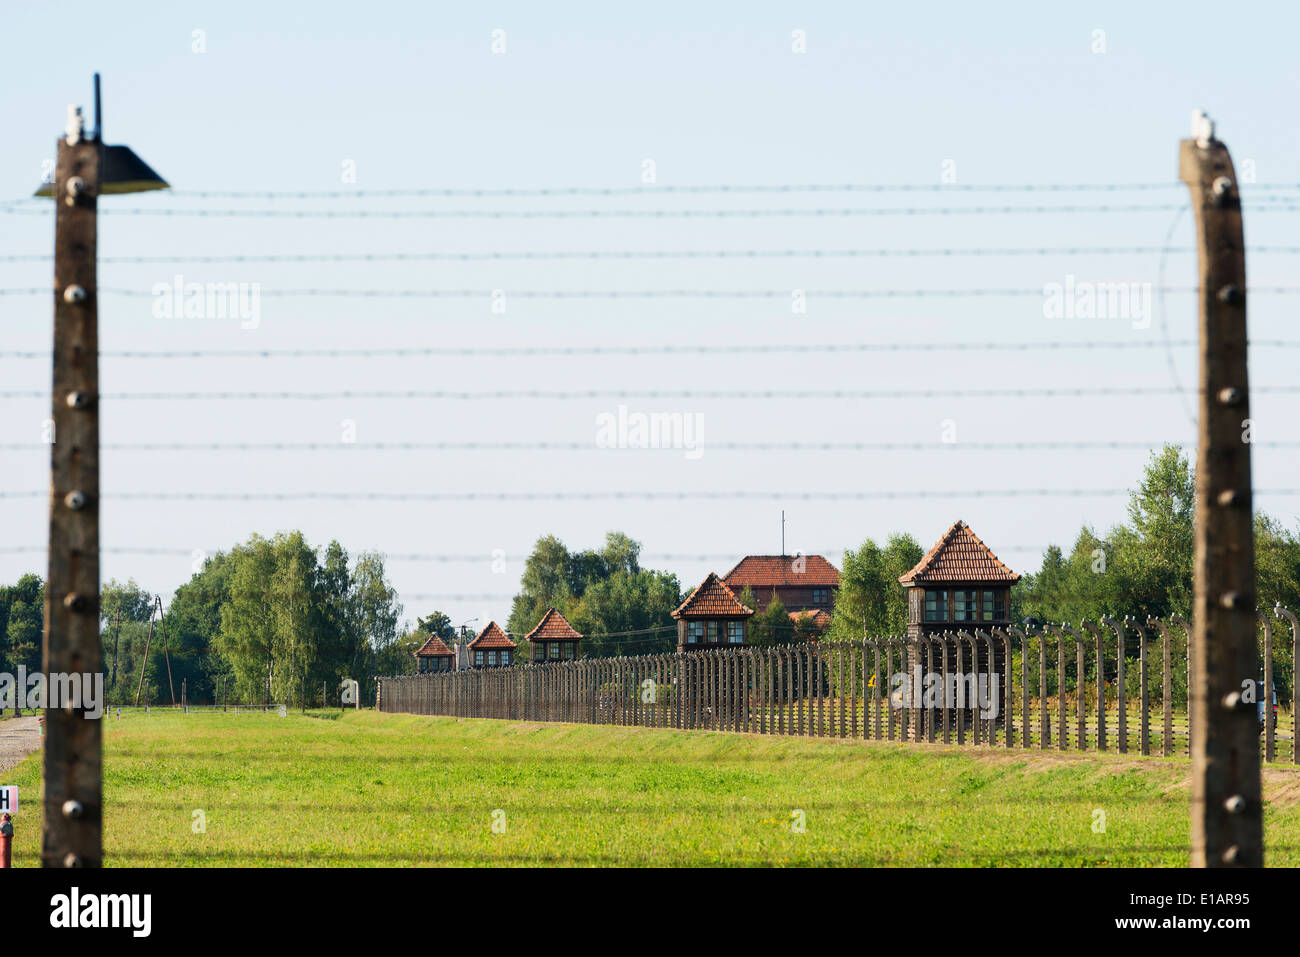 Europe, Poland, Silesia, Oswiecim, Auschwitz-Birkenau, German Nazi Concentration Camp and Extermination Camp, Unesco - Stock Image